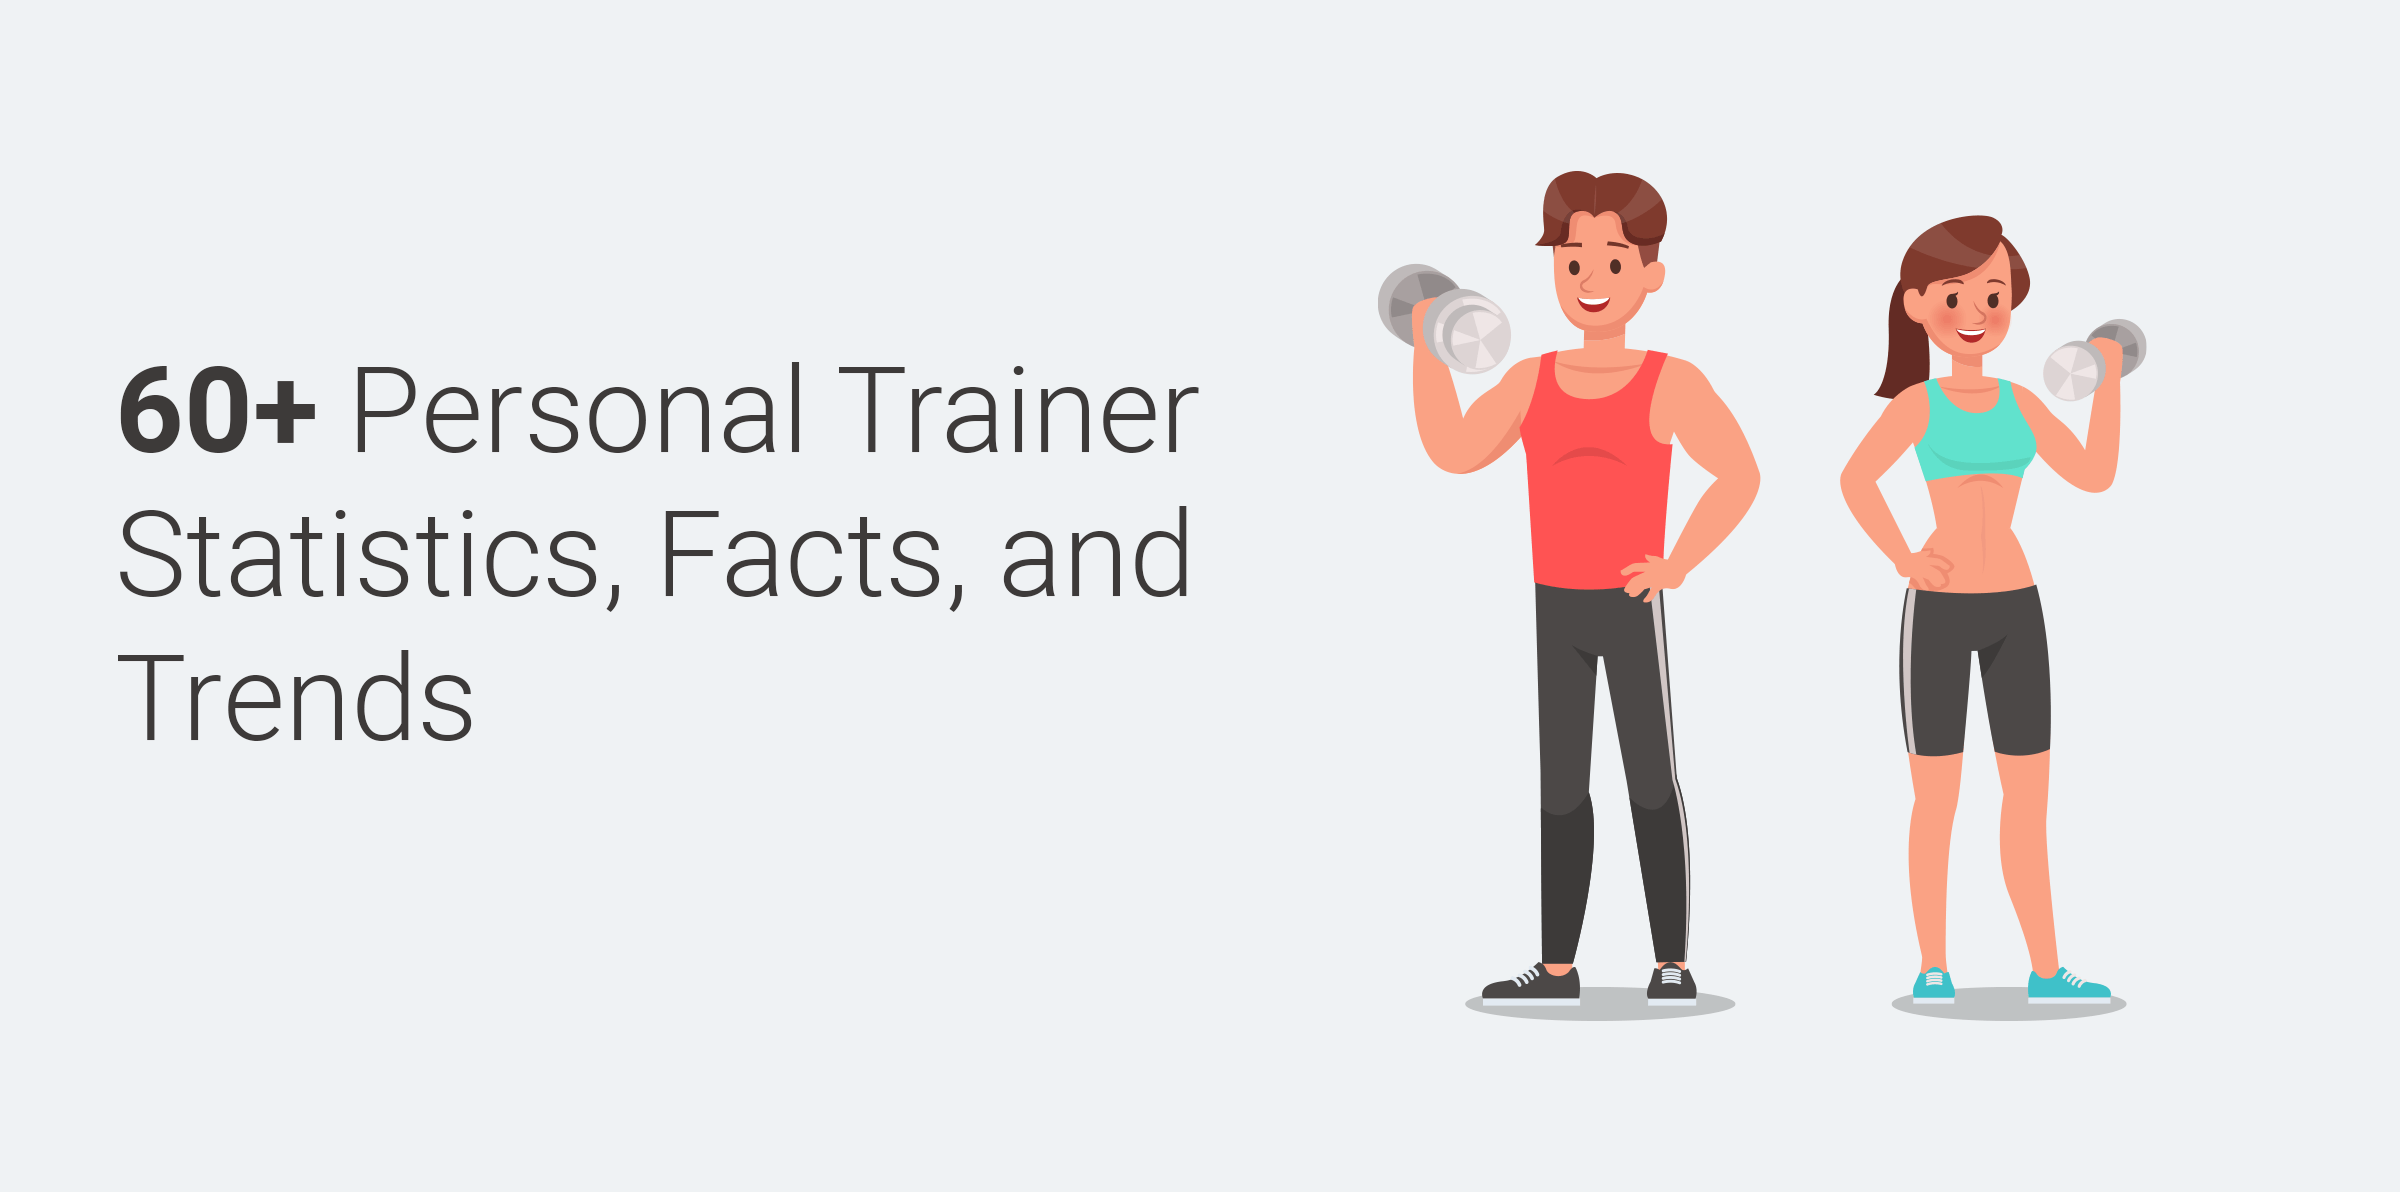 60+ Personal Trainer Statistics, Facts, and Trends